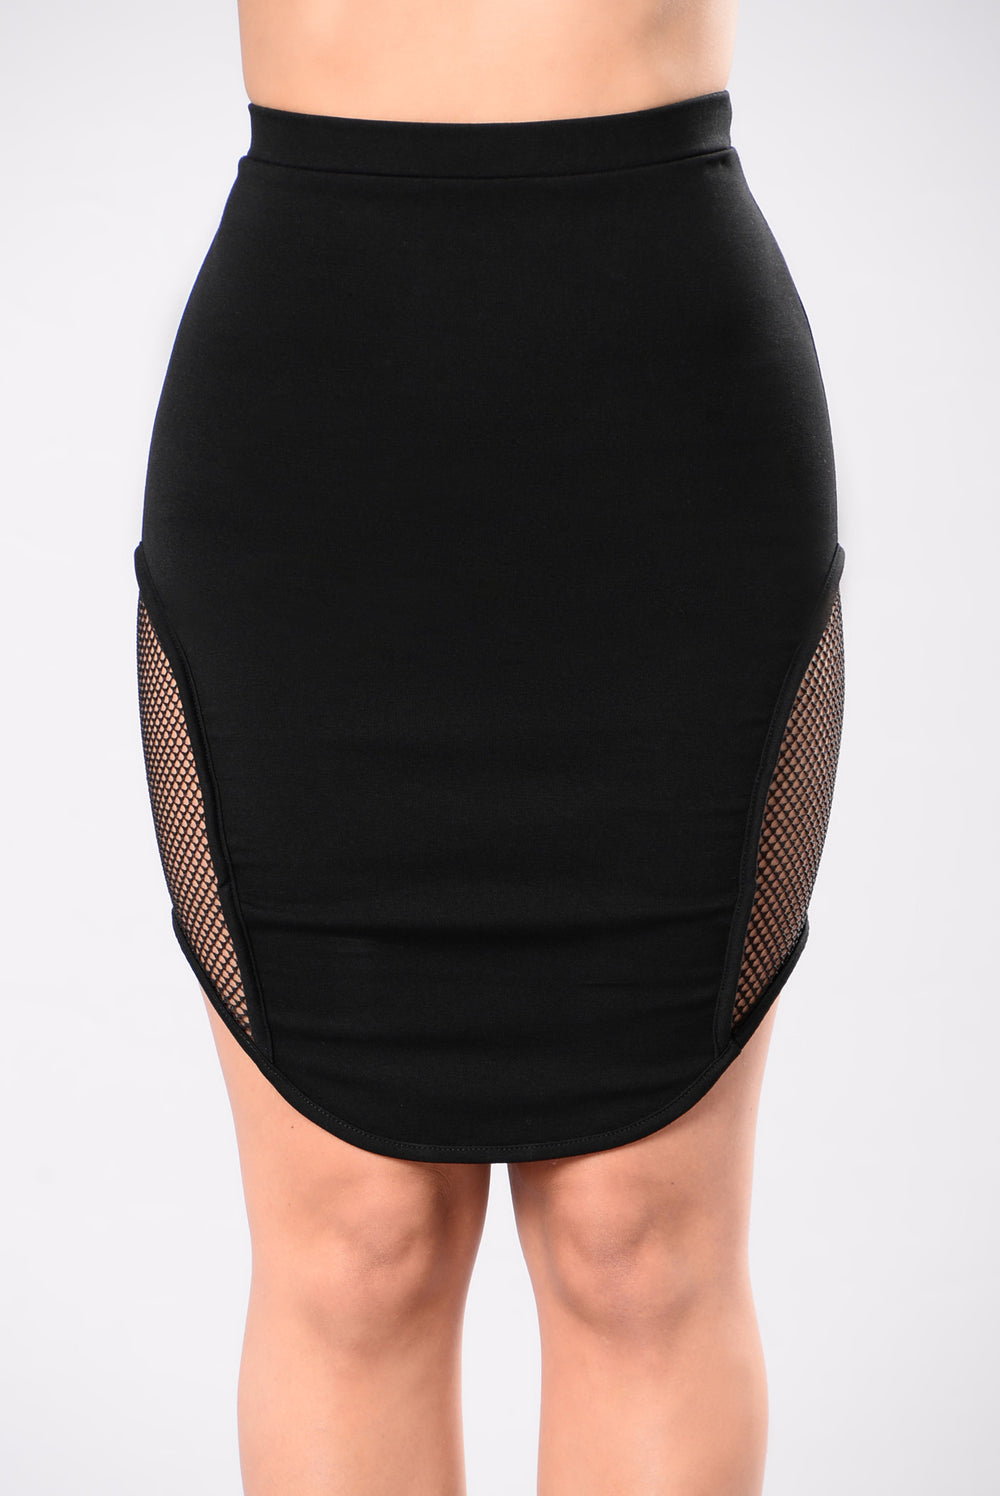 Girls Only Skirt - Black